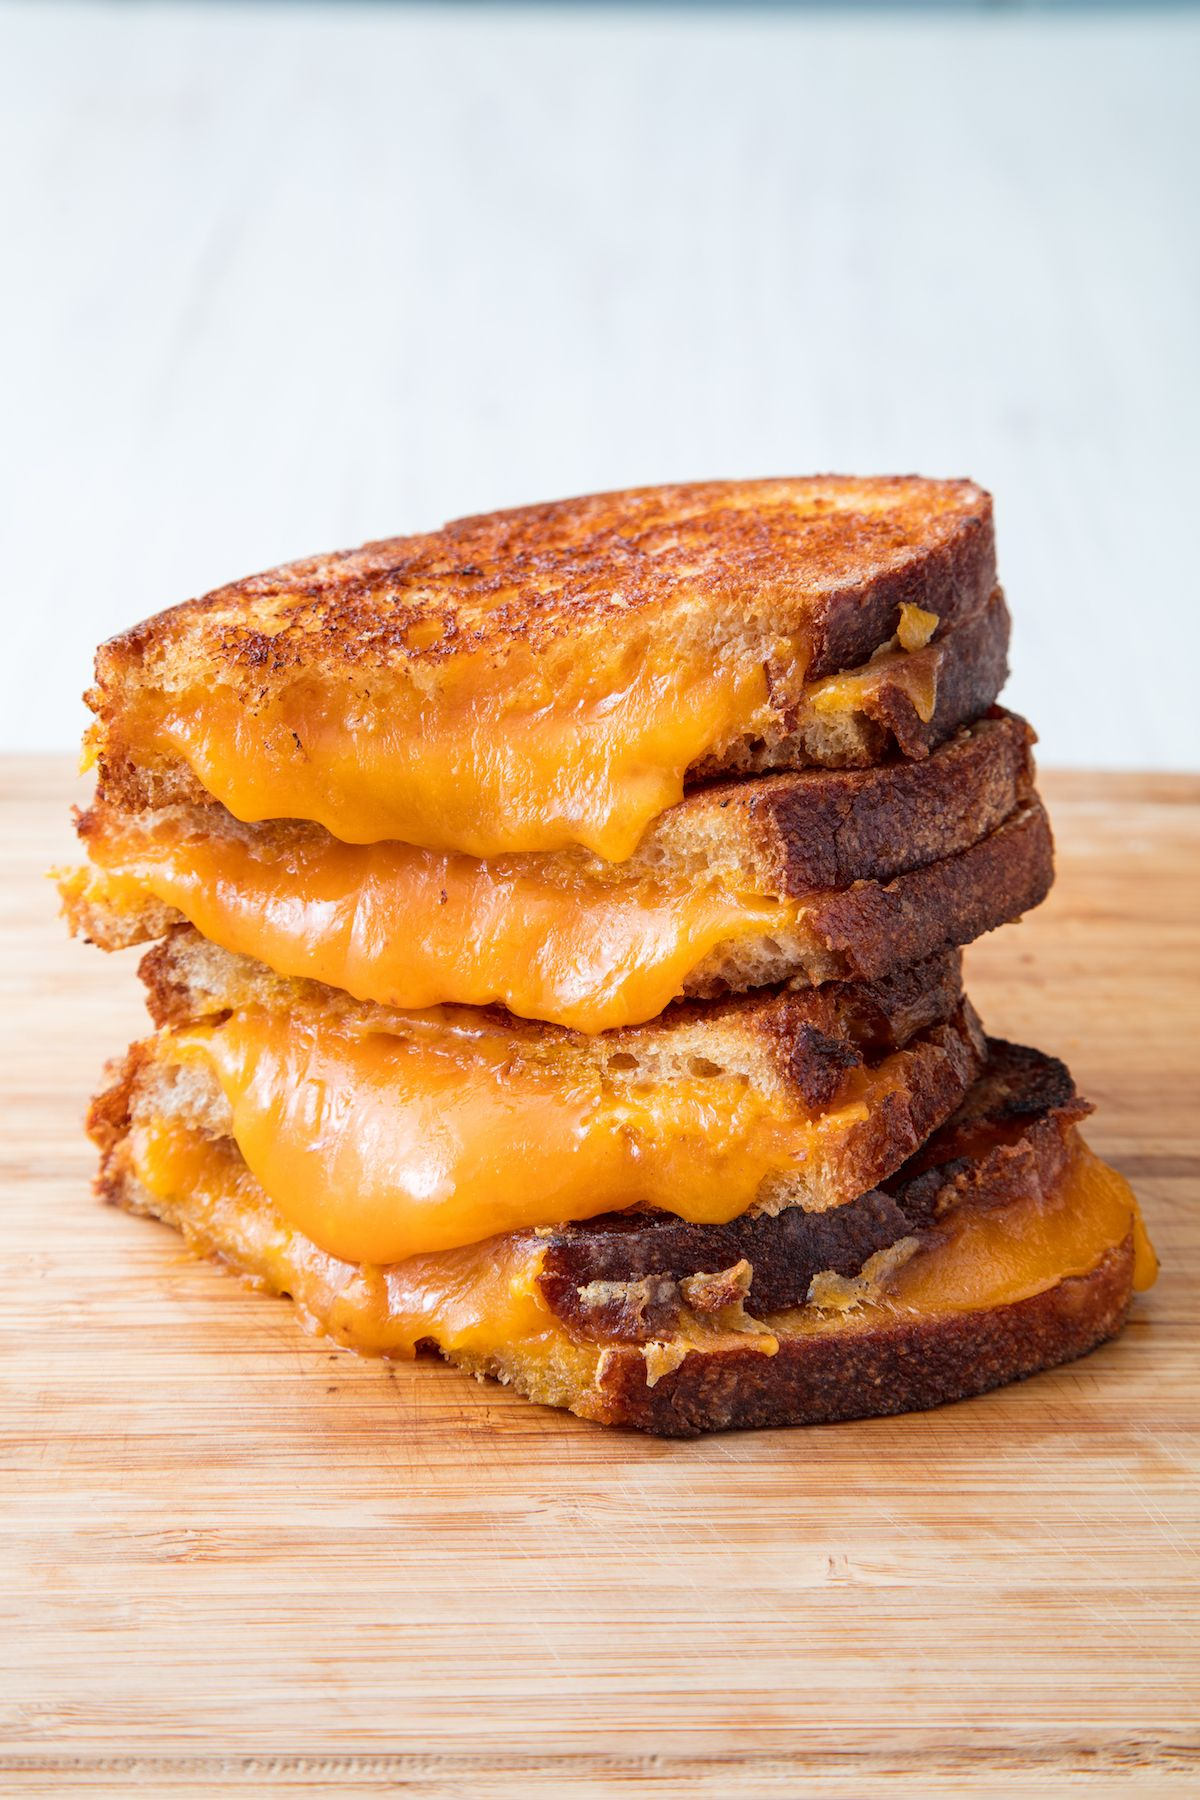 60 Best Grilled Cheese Sandwich Recipes How To Make Creative Grilled Cheese Ideas